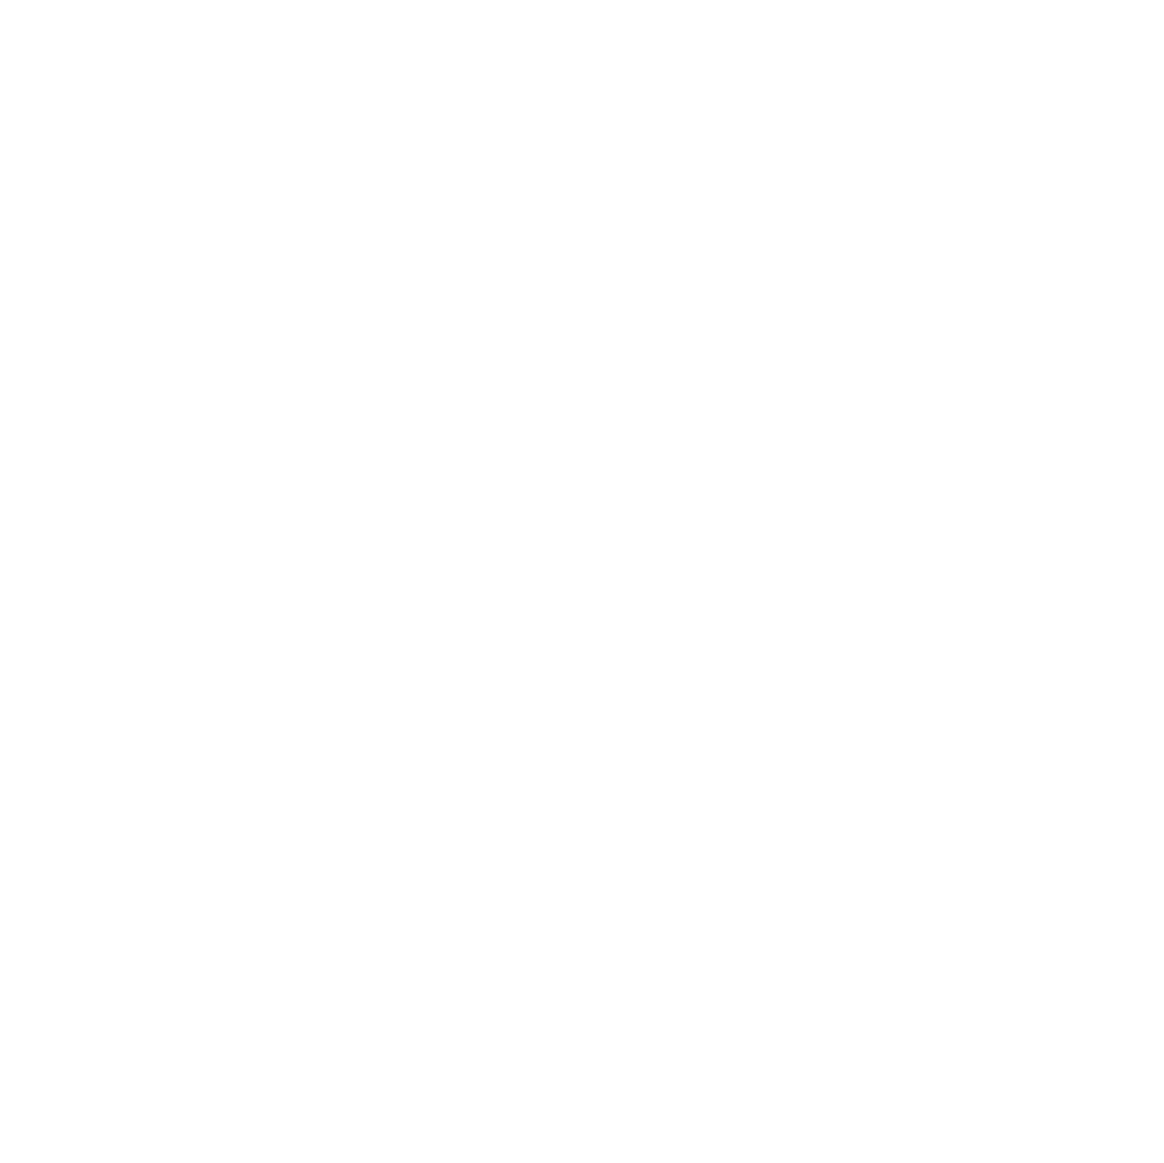 Icon with bus in the middle